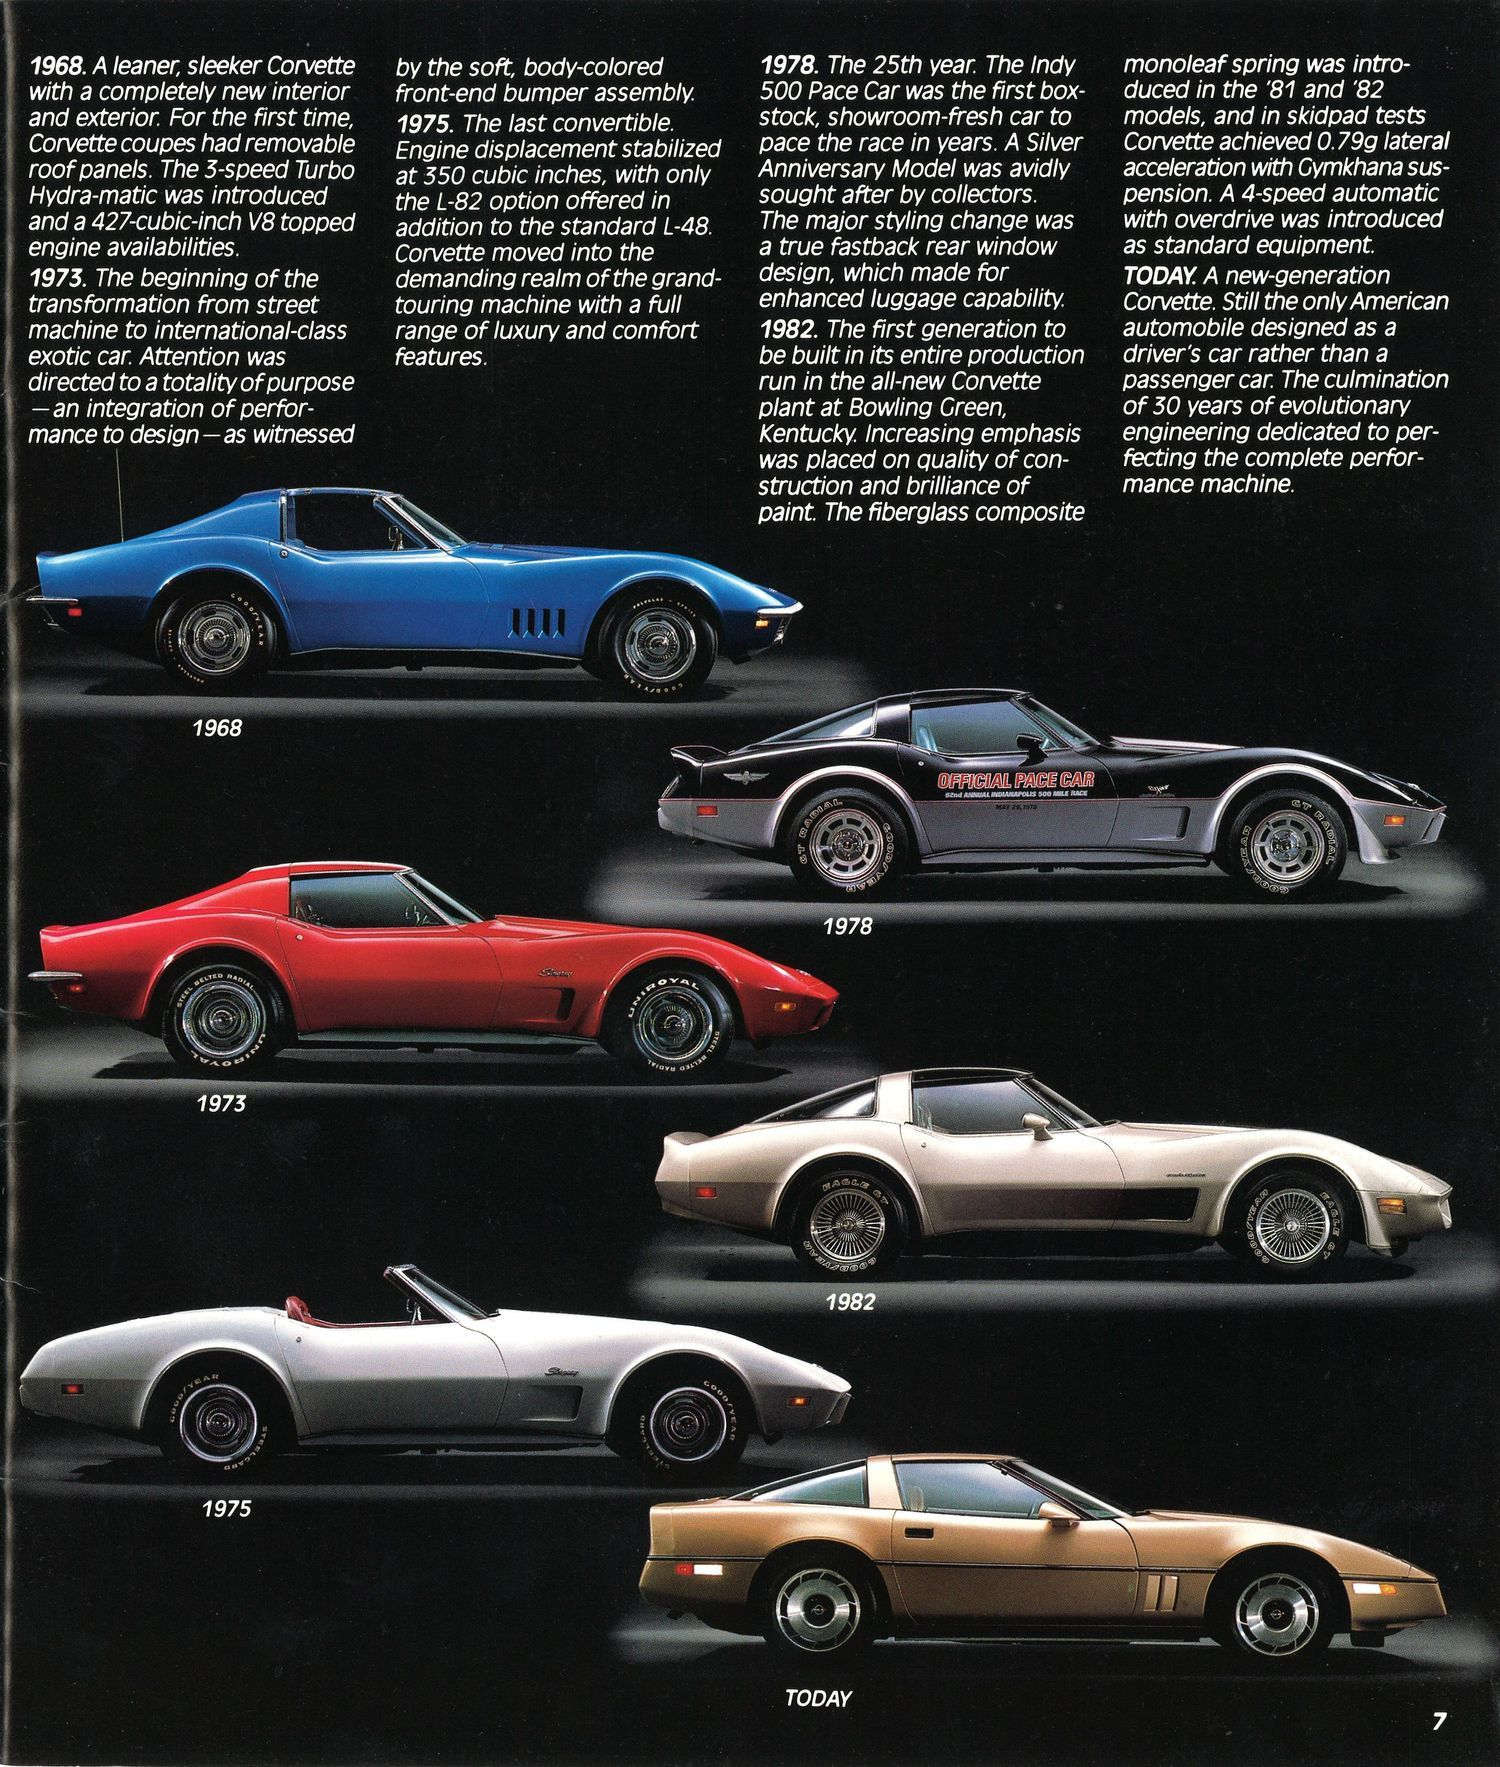 Manufactured From 1984 To 1996 Under Model Years 1984 To 1996 The C4 Corvette Was Gm S Answer To The Demise Of Th Chevrolet Corvette Corvette Vintage Corvette